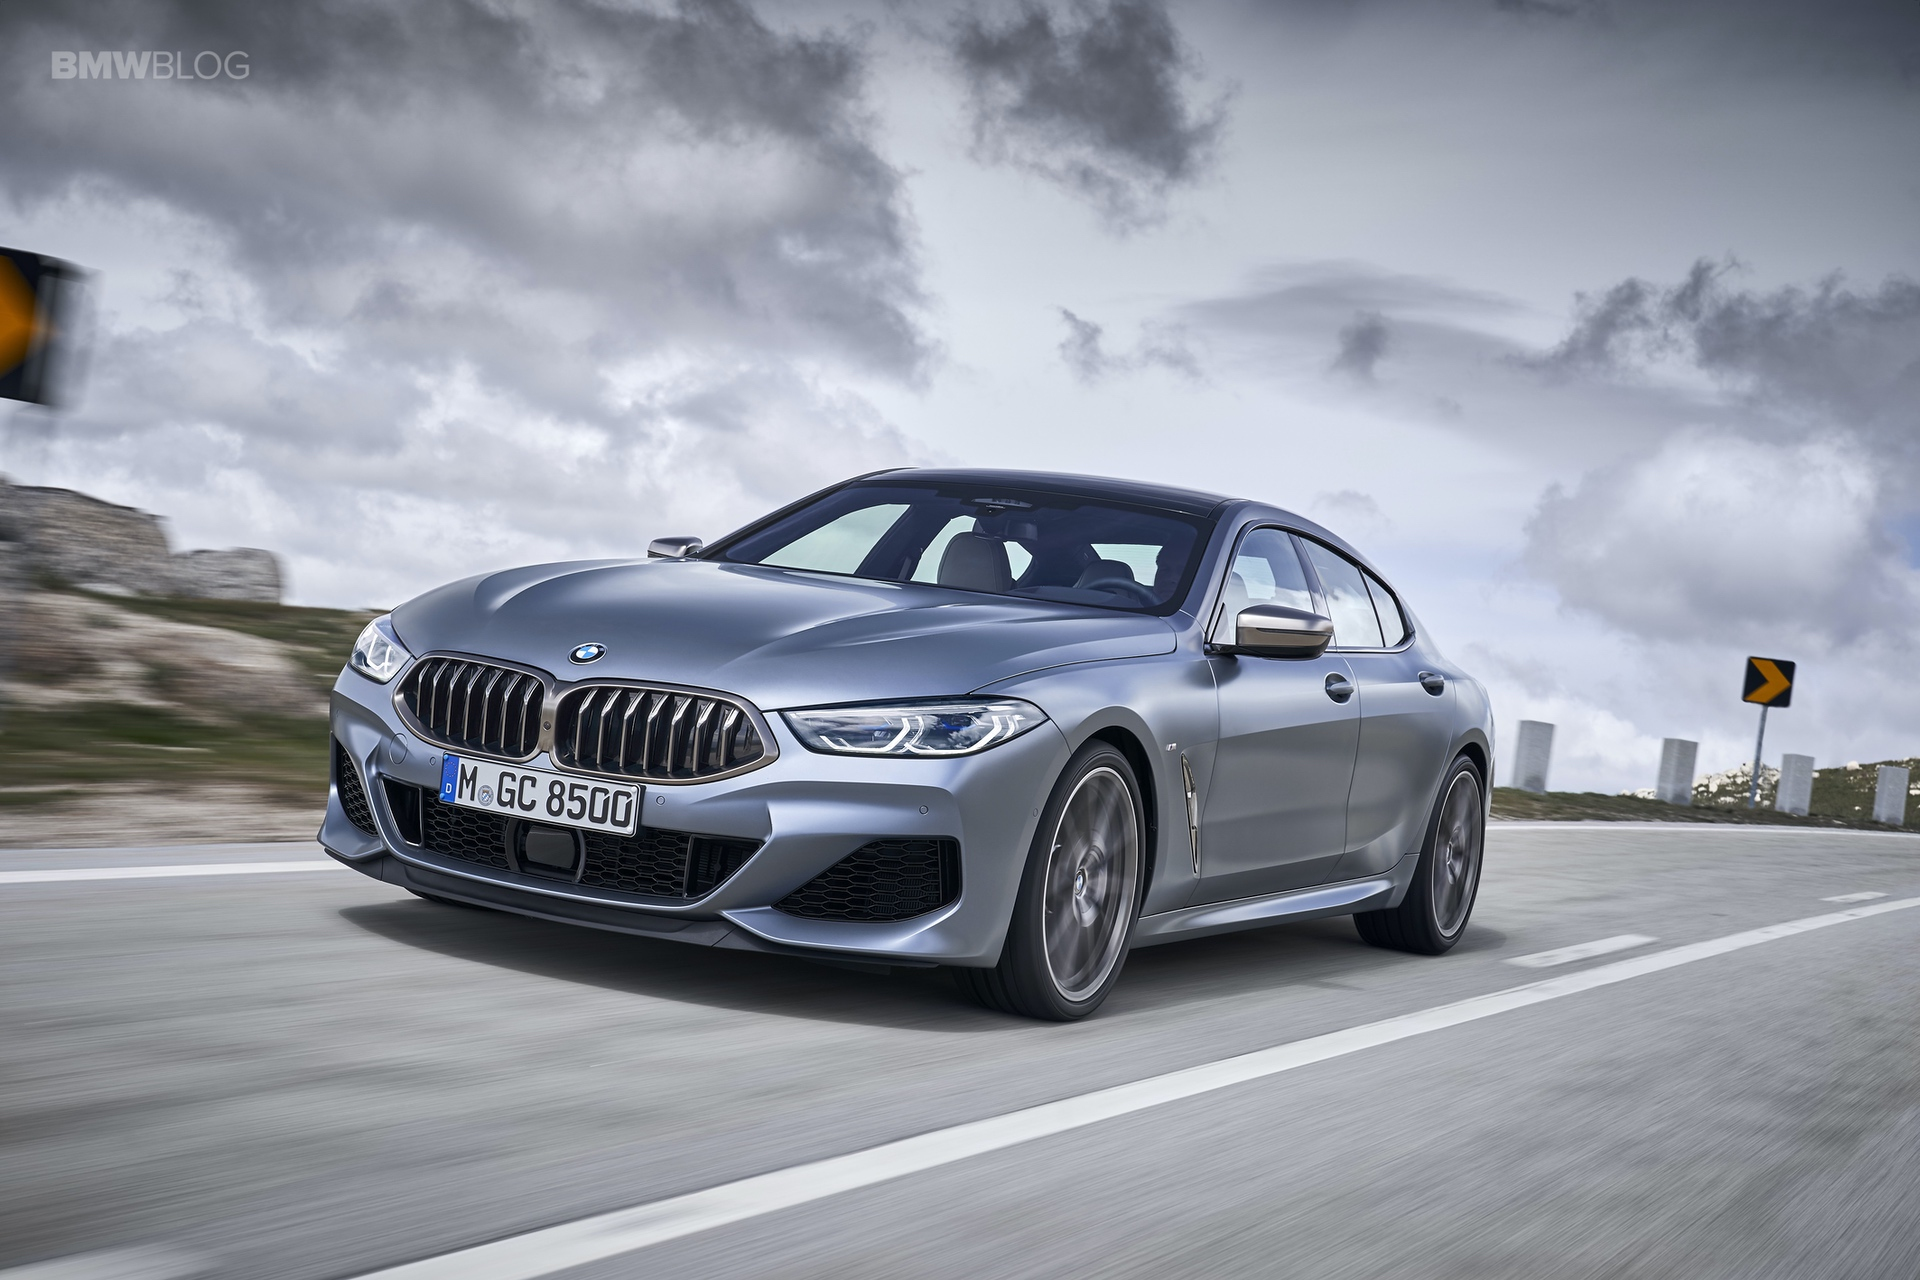 TEST DRIVE: BMW M850i Gran Coupe — Four is Better Than Two